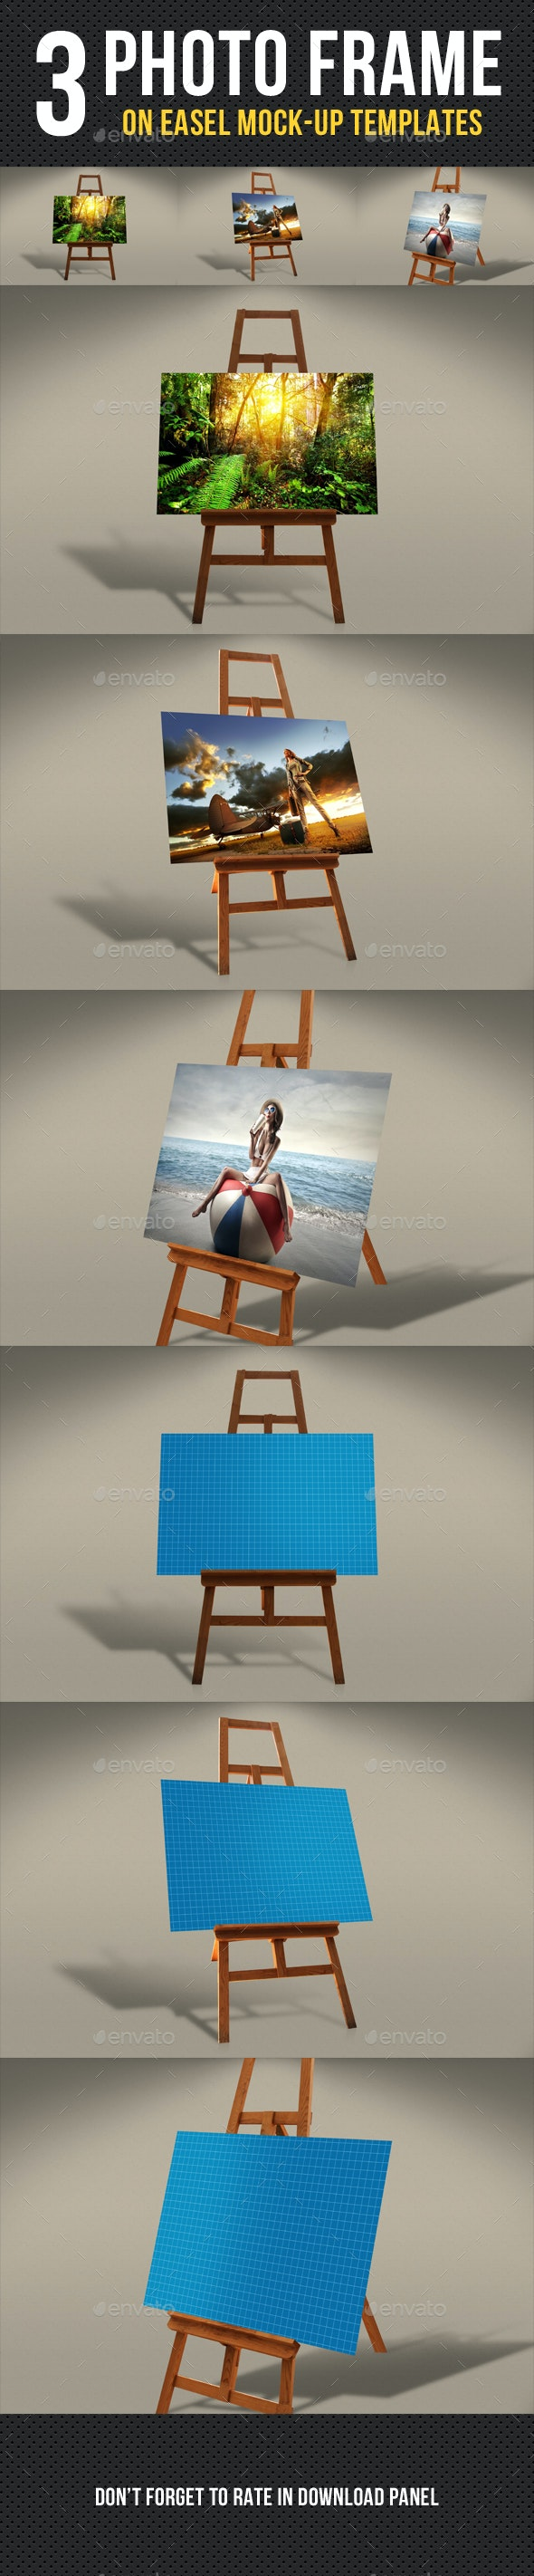 Photo Frame On Easel Mock-Up - Artistic Photo Templates